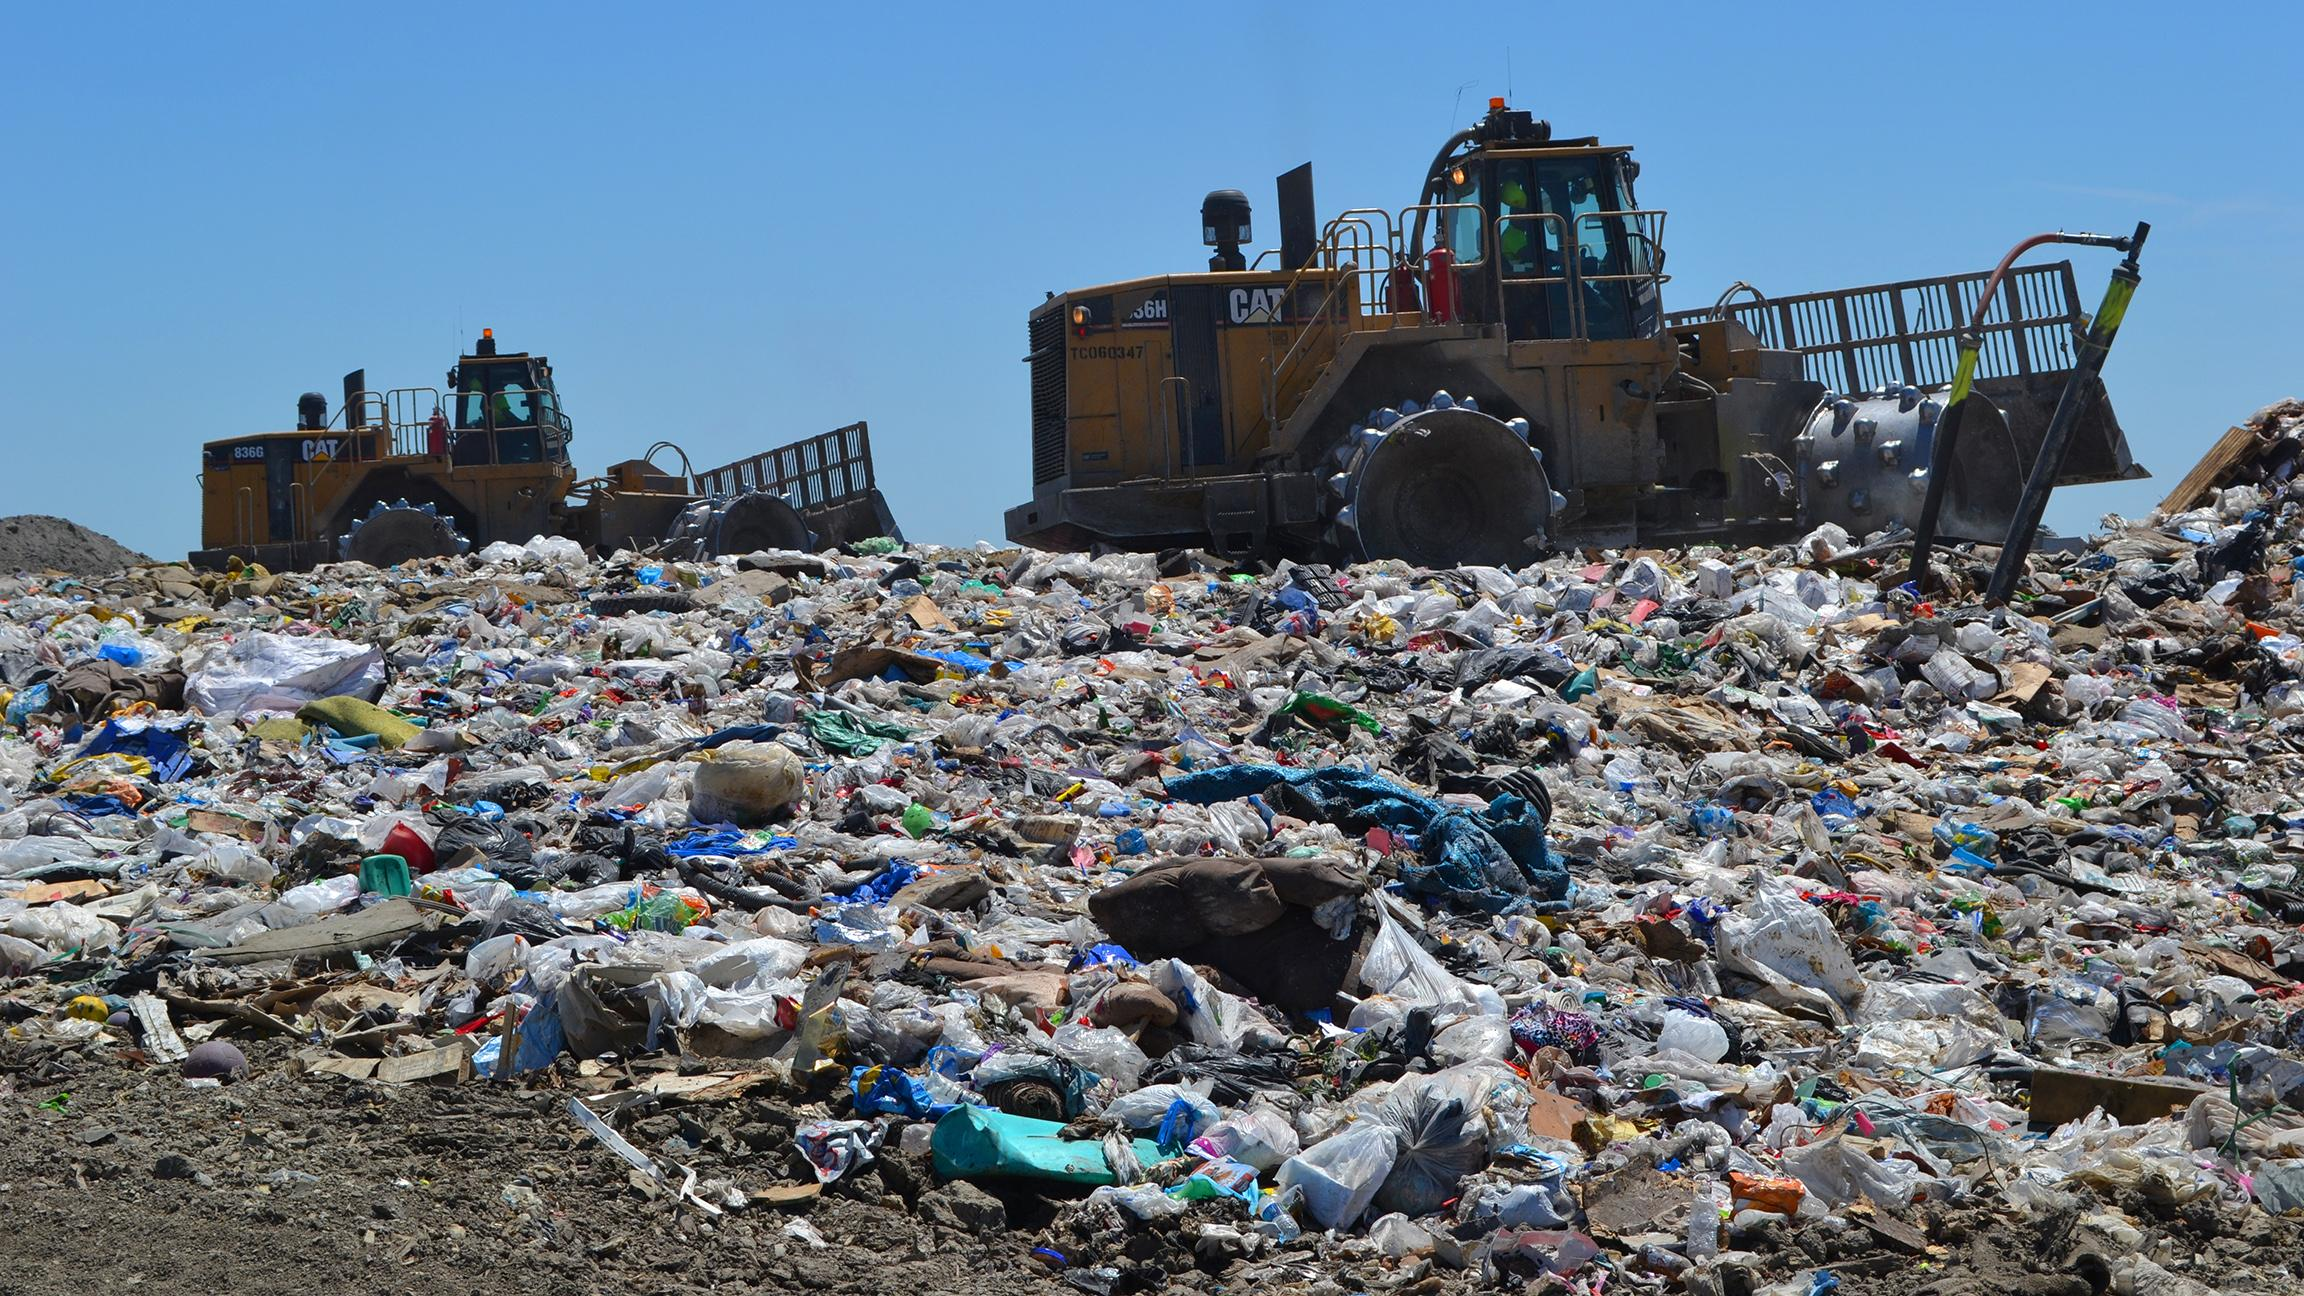 A landfill in Livingston County. Landfills account for nearly 20 percent of national emissions of methane, a greenhouse gas more harmful than carbon dioxide. (Chicago Tonight file photo)